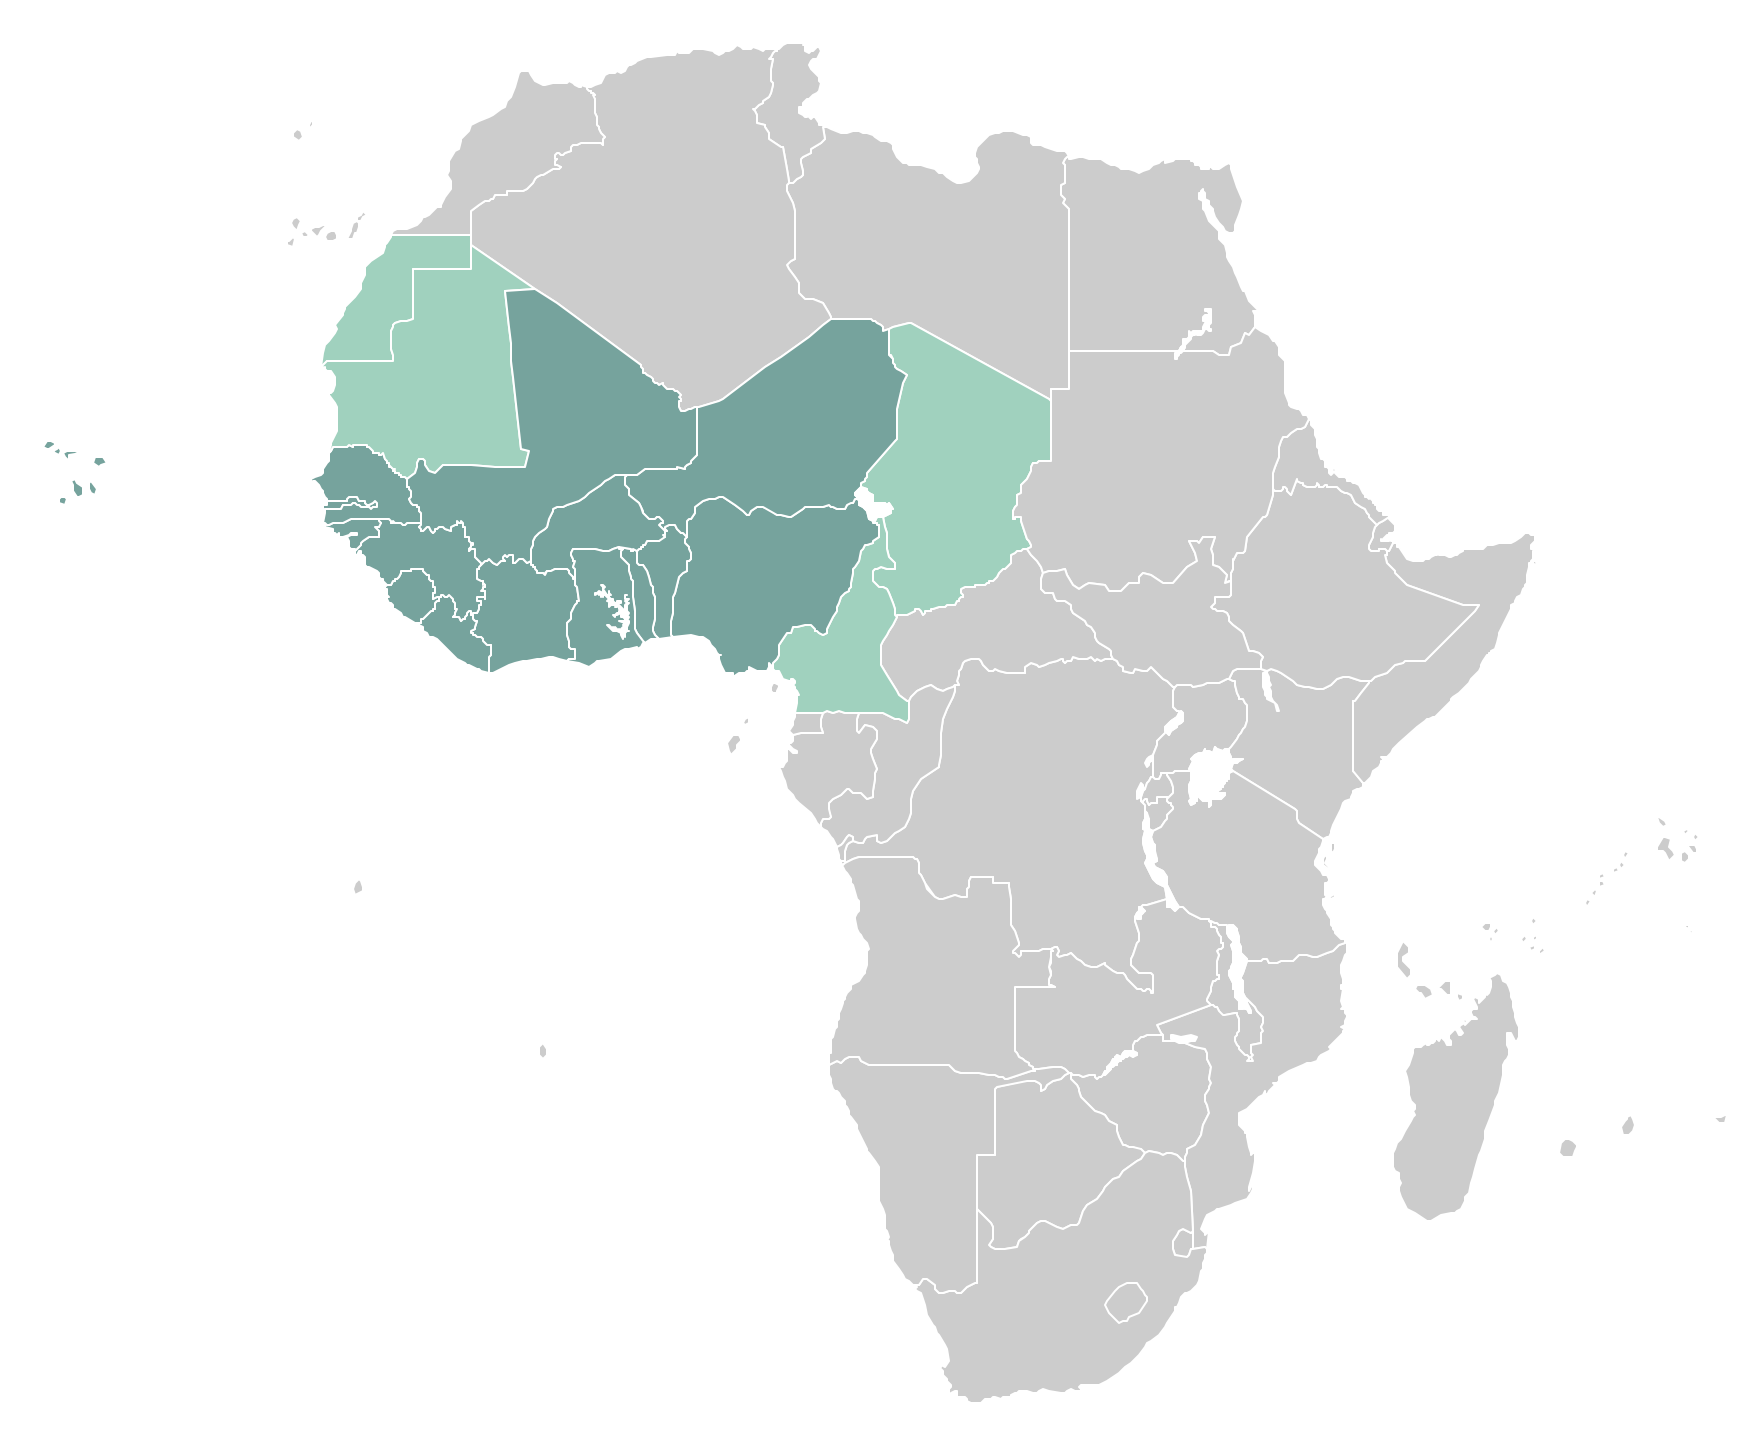 Africa clipart africa west. Map